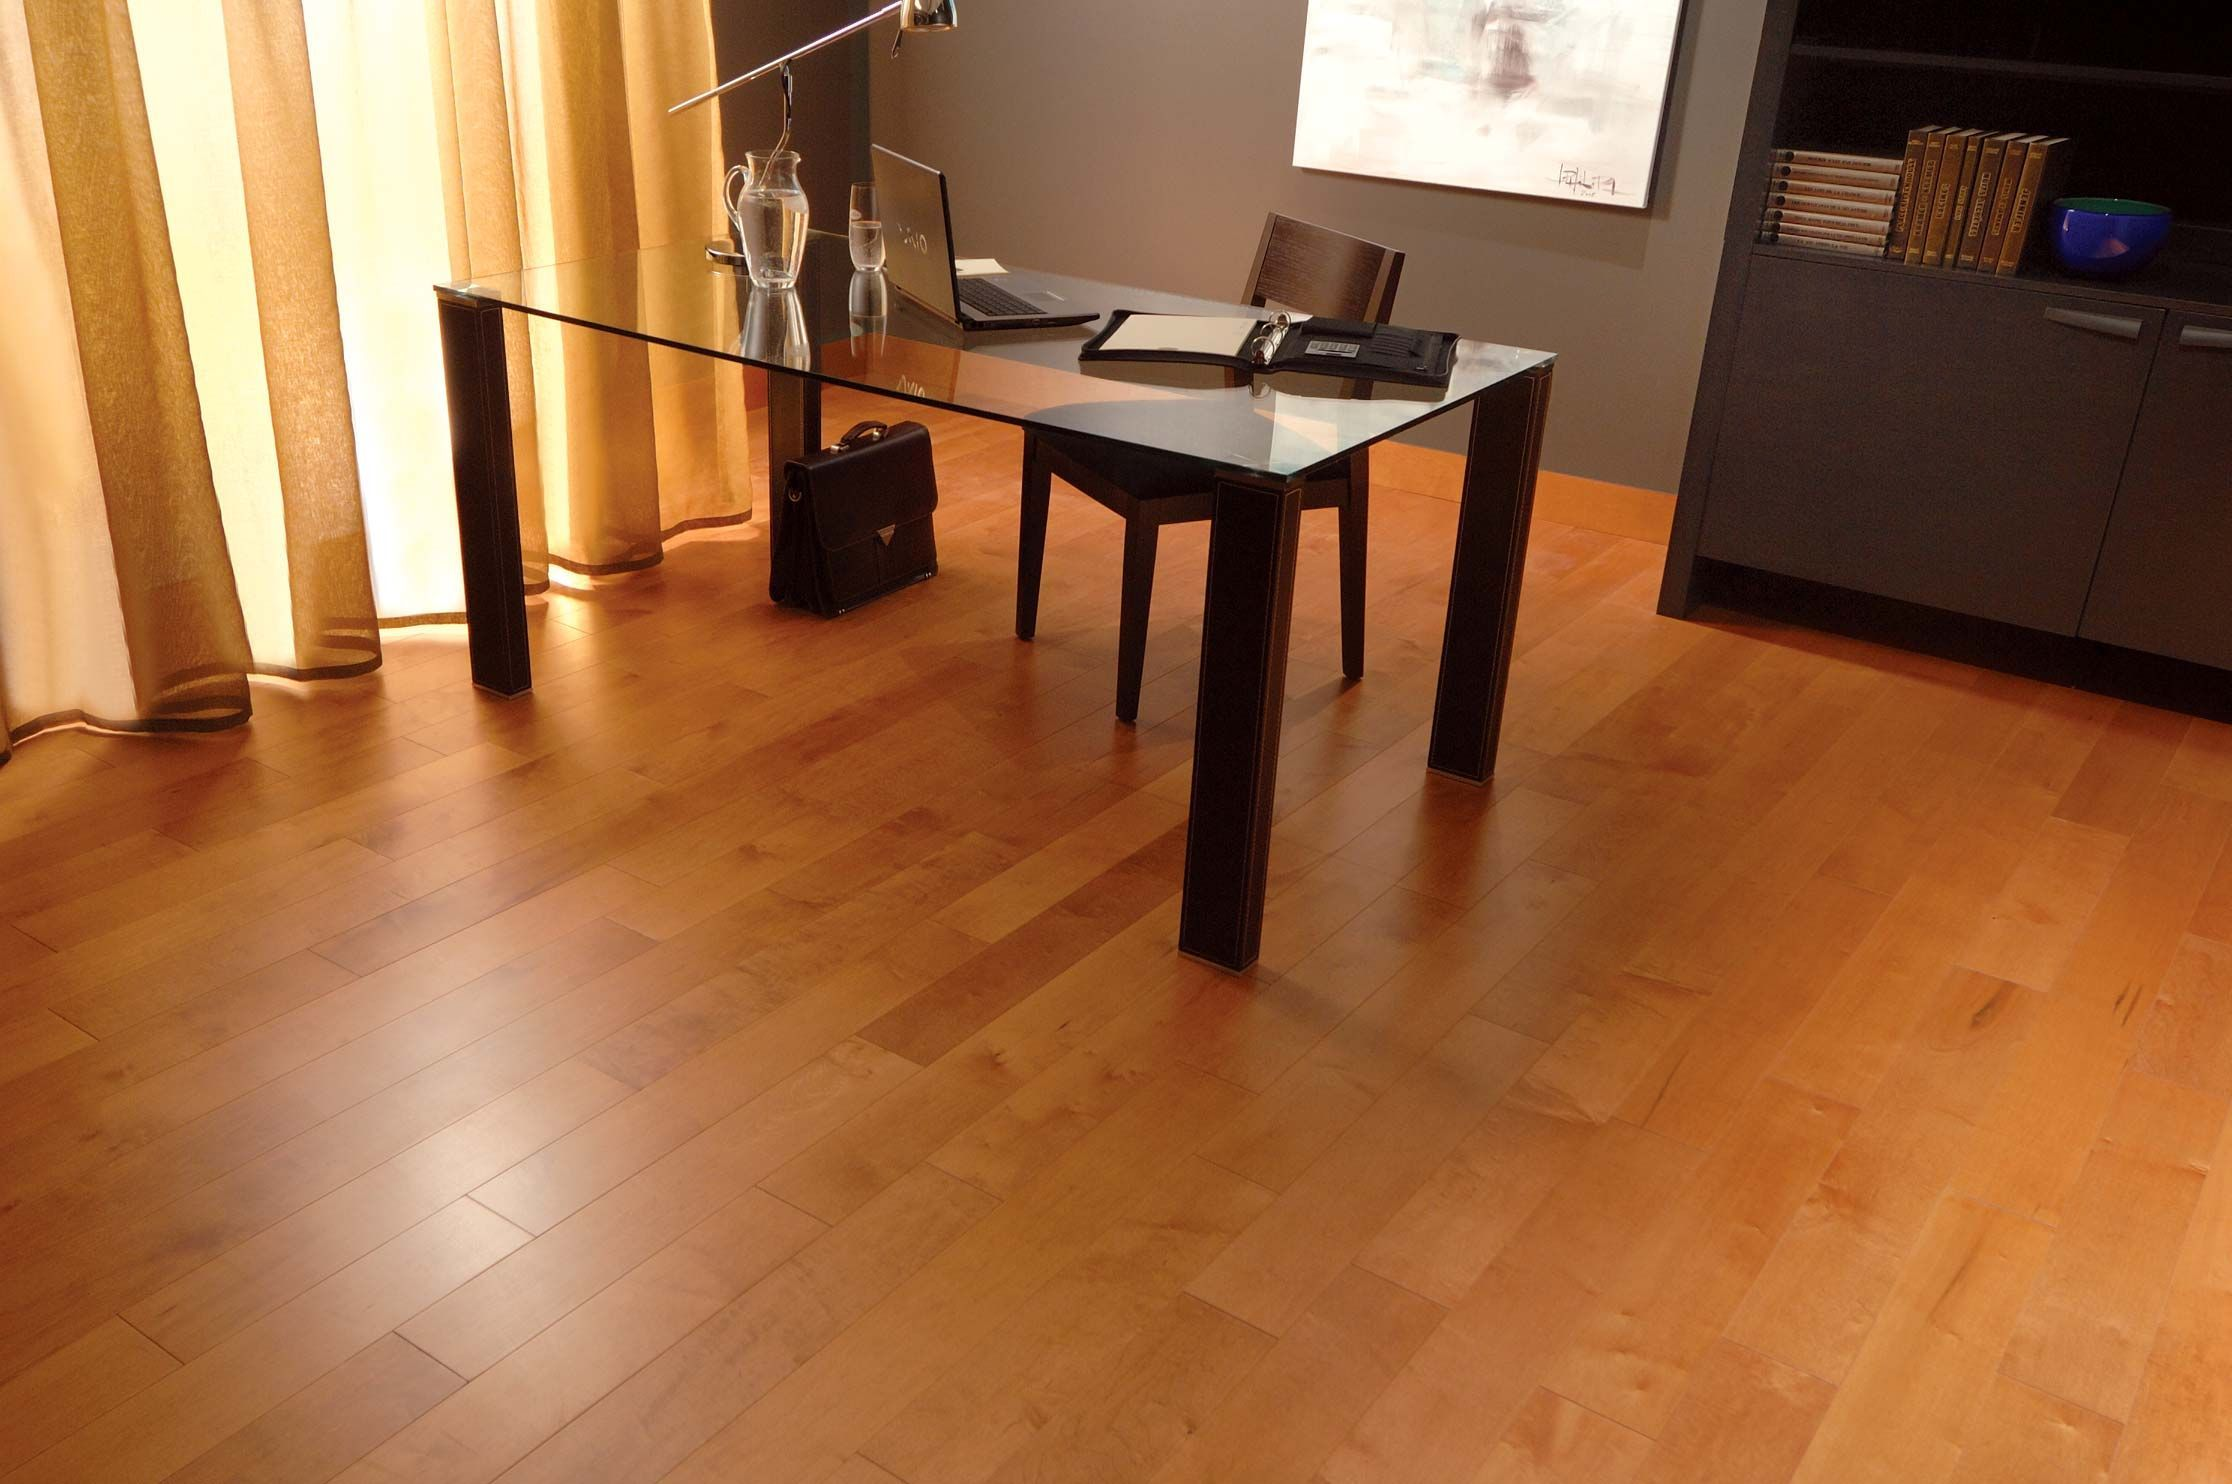 Mirage maple auburn 5 inspiration admiration 13013 for Mirage wood floors